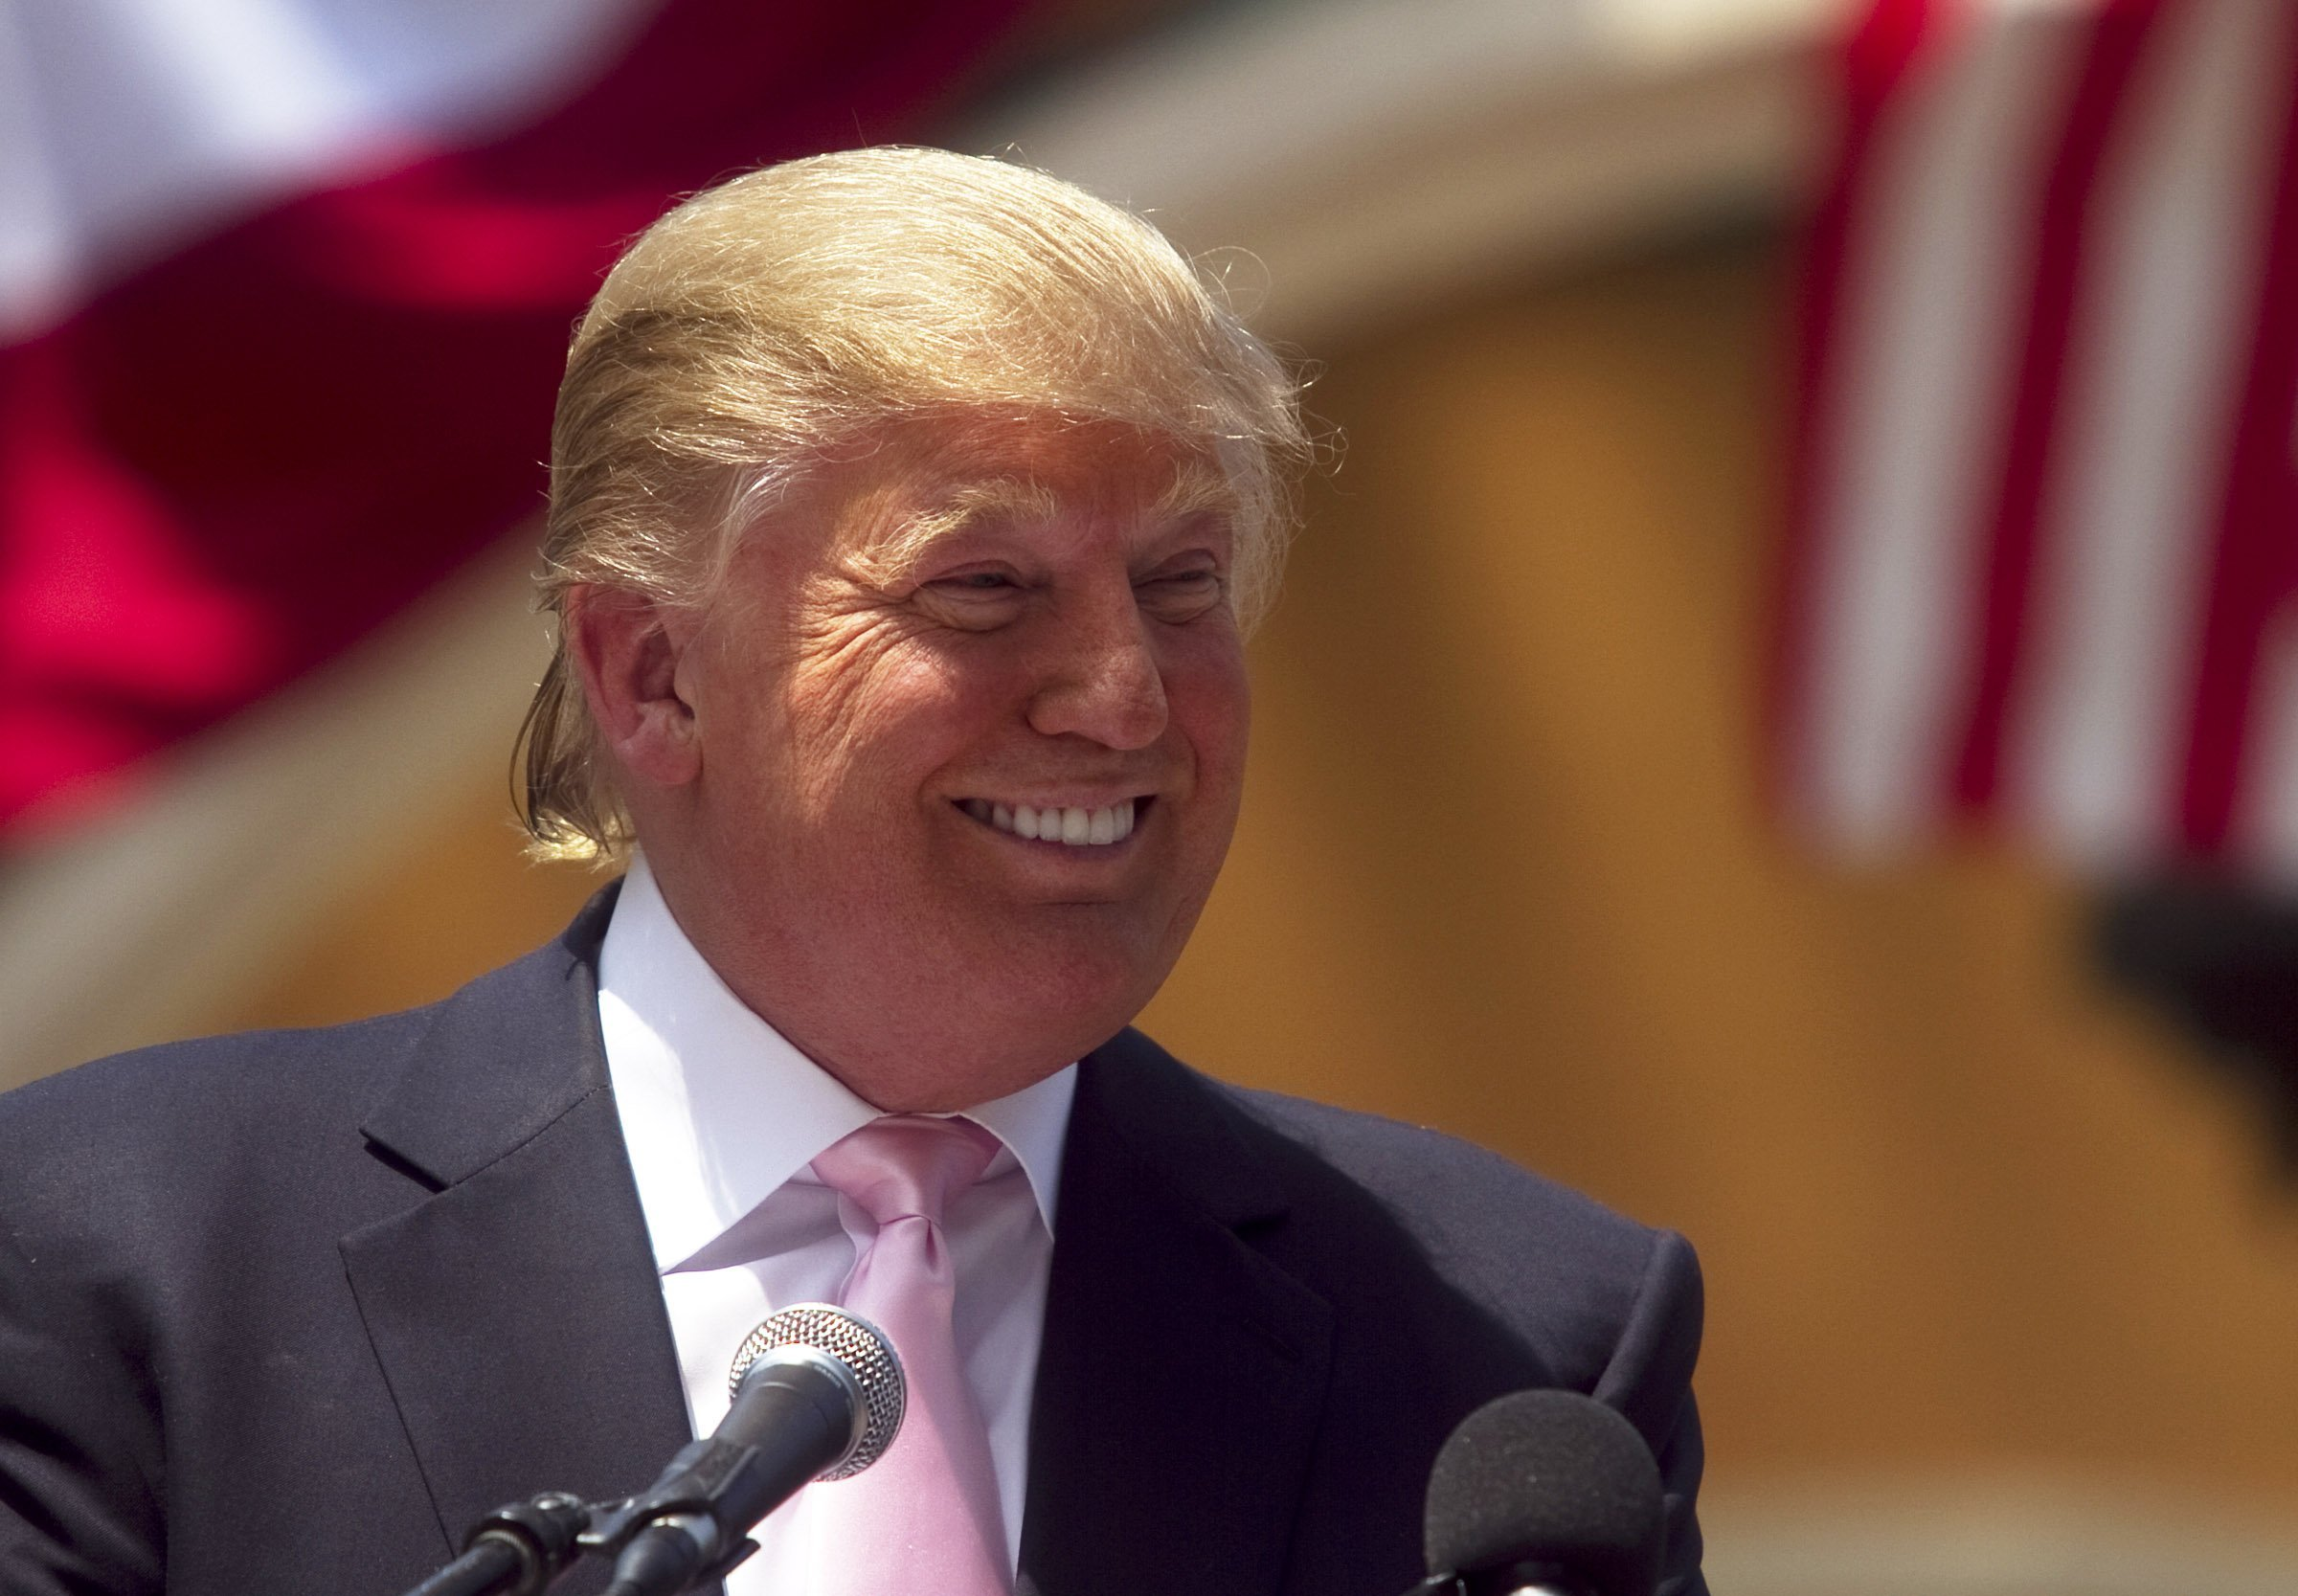 Donald Trump laughs while speaking to a crowd at the 2011 Palm Beach County Tax Day Tea Party on April 16, 2011, at Sanborn Square in Boca Raton, Florida. | Source: Getty Images.